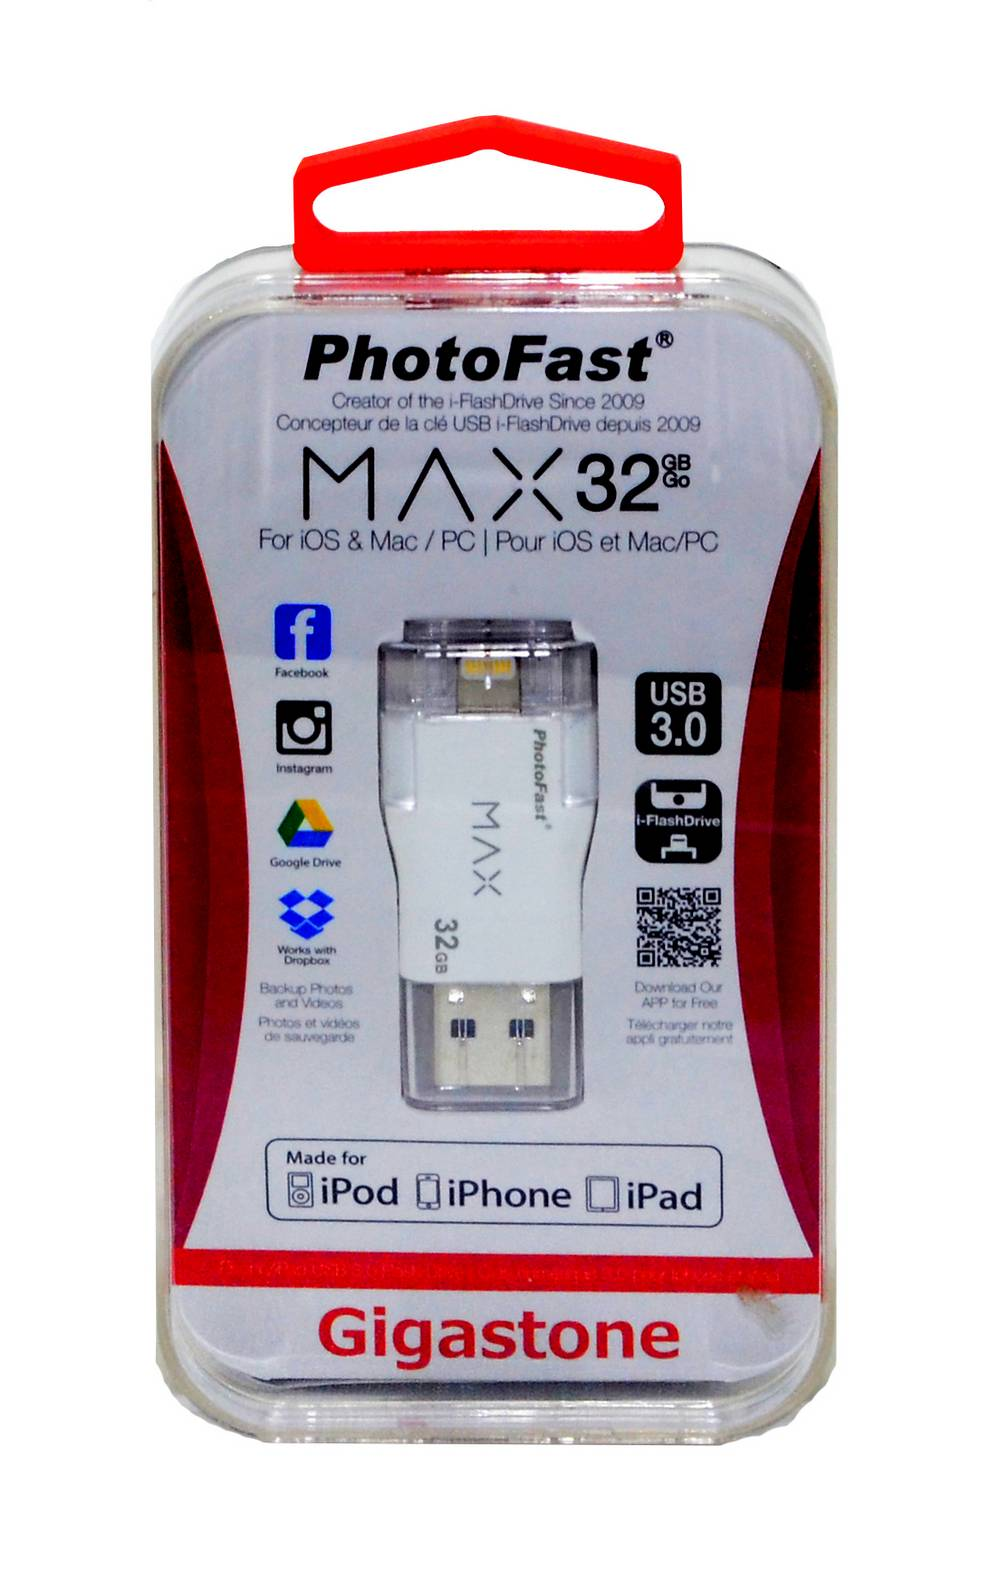 PhotoFast USB 3.0 i-FlashDrive Max 32GB OTG MFI για iPhone & iPad & iPod by Gigastone  PF-iFMAXU332GB-R